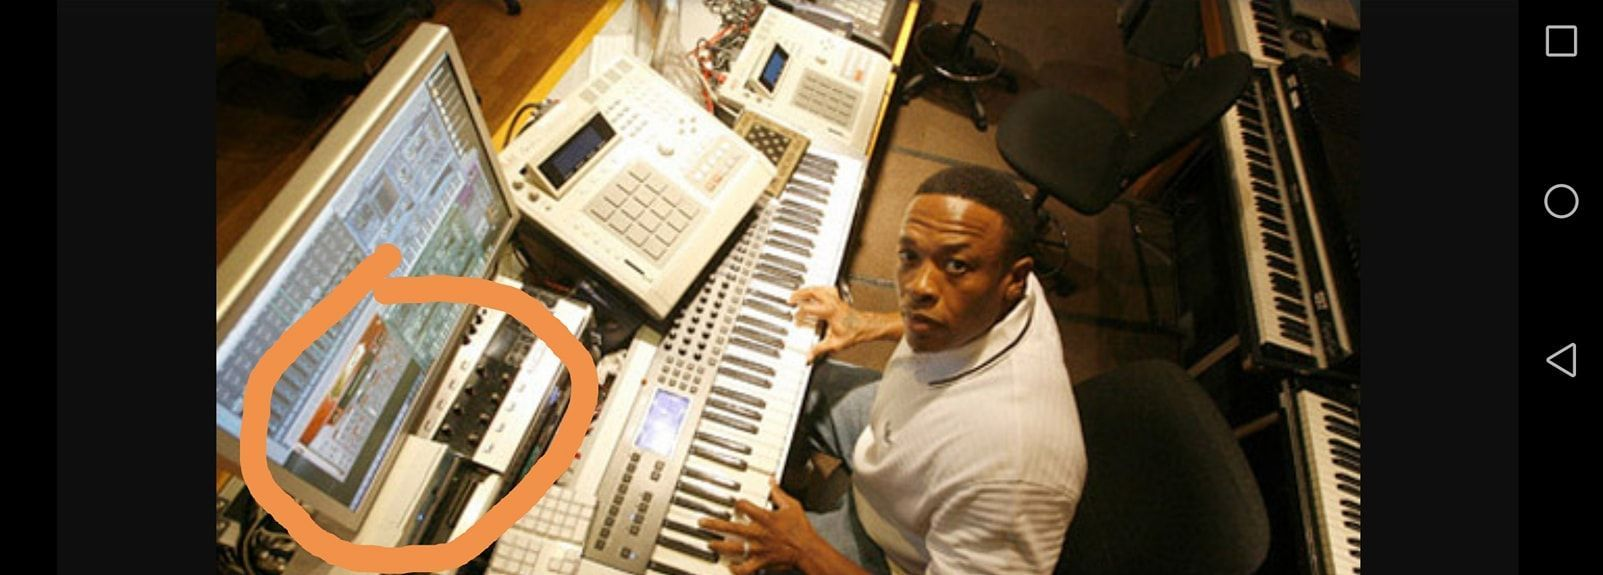 Dr. Dre using Spectrasonics Trilogy Total Bass Module Software Synthesizer